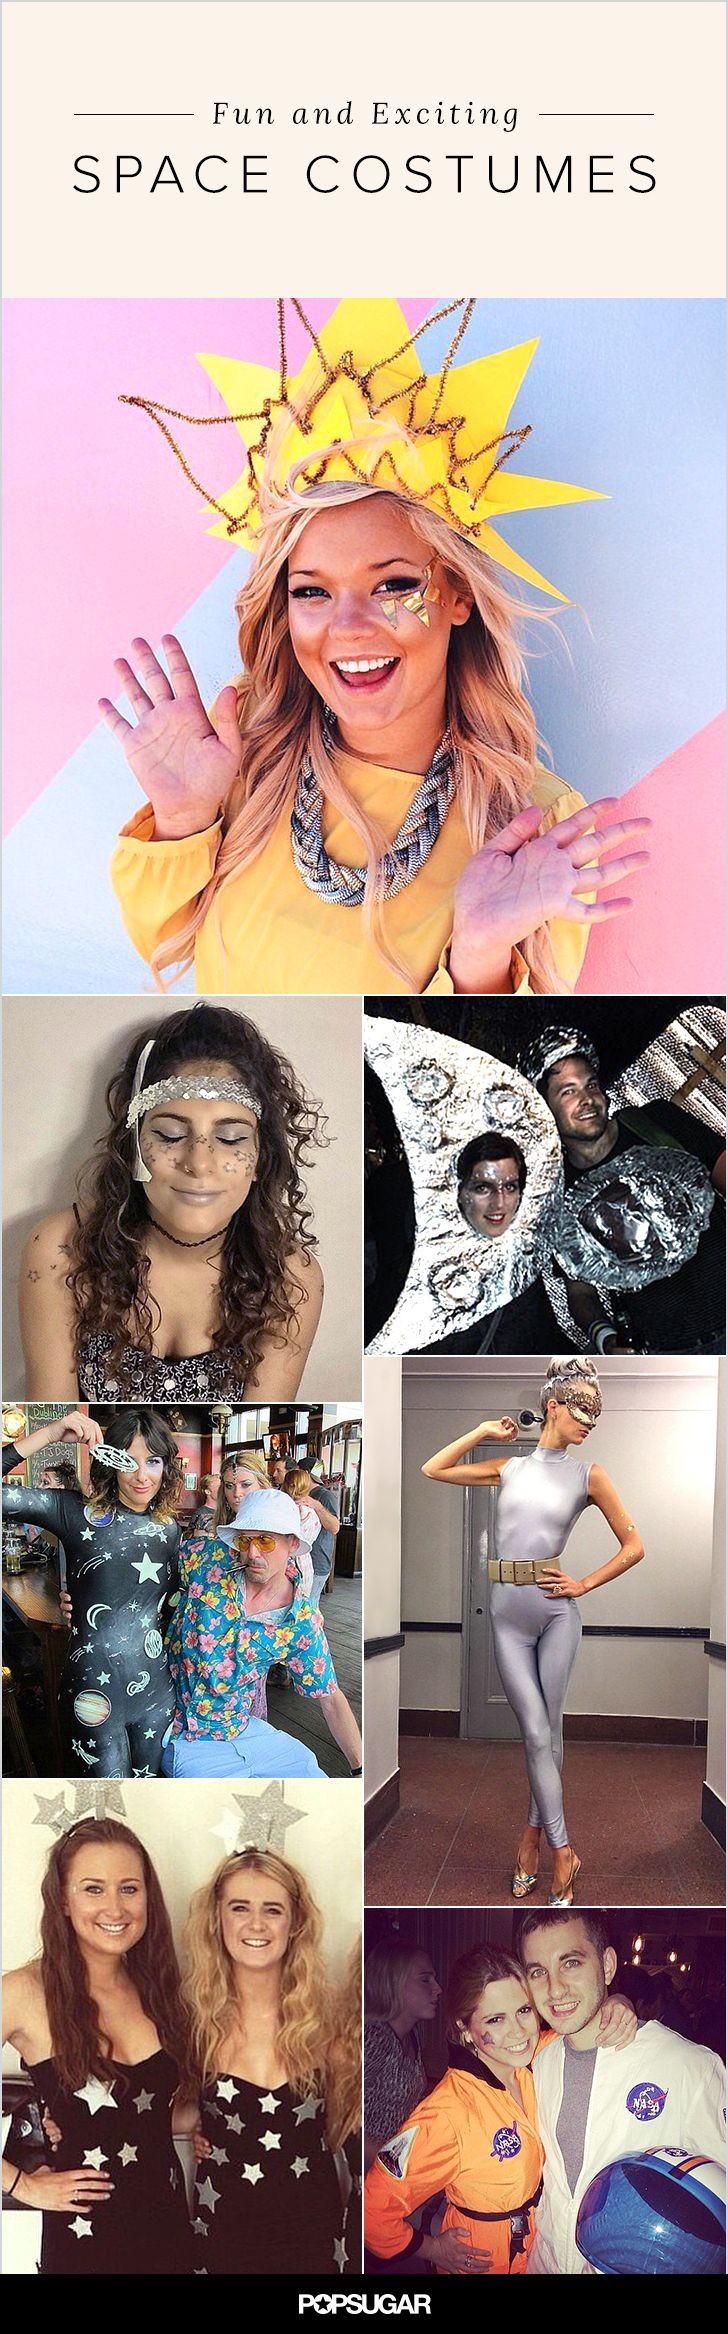 Best 10+ Costume ideas ideas on Pinterest | Diy costumes, Diy ...